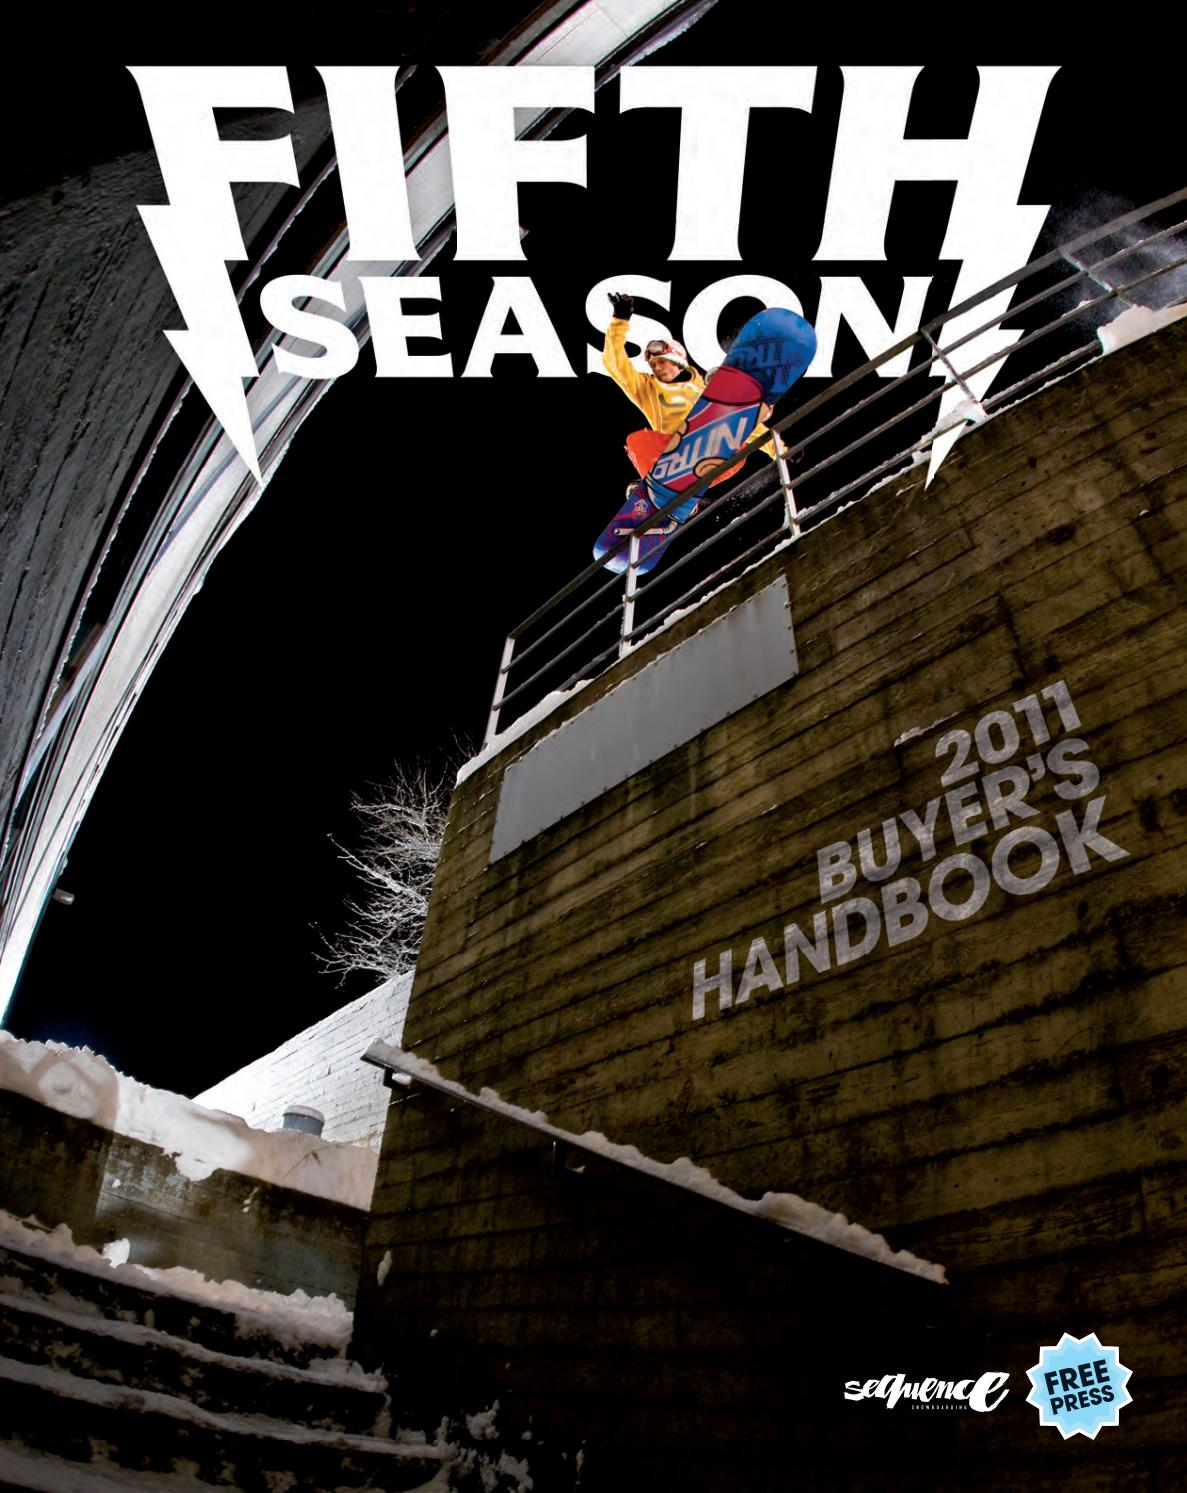 Fifth Season Buyer's Guide 2011 by Hand Communication issuu